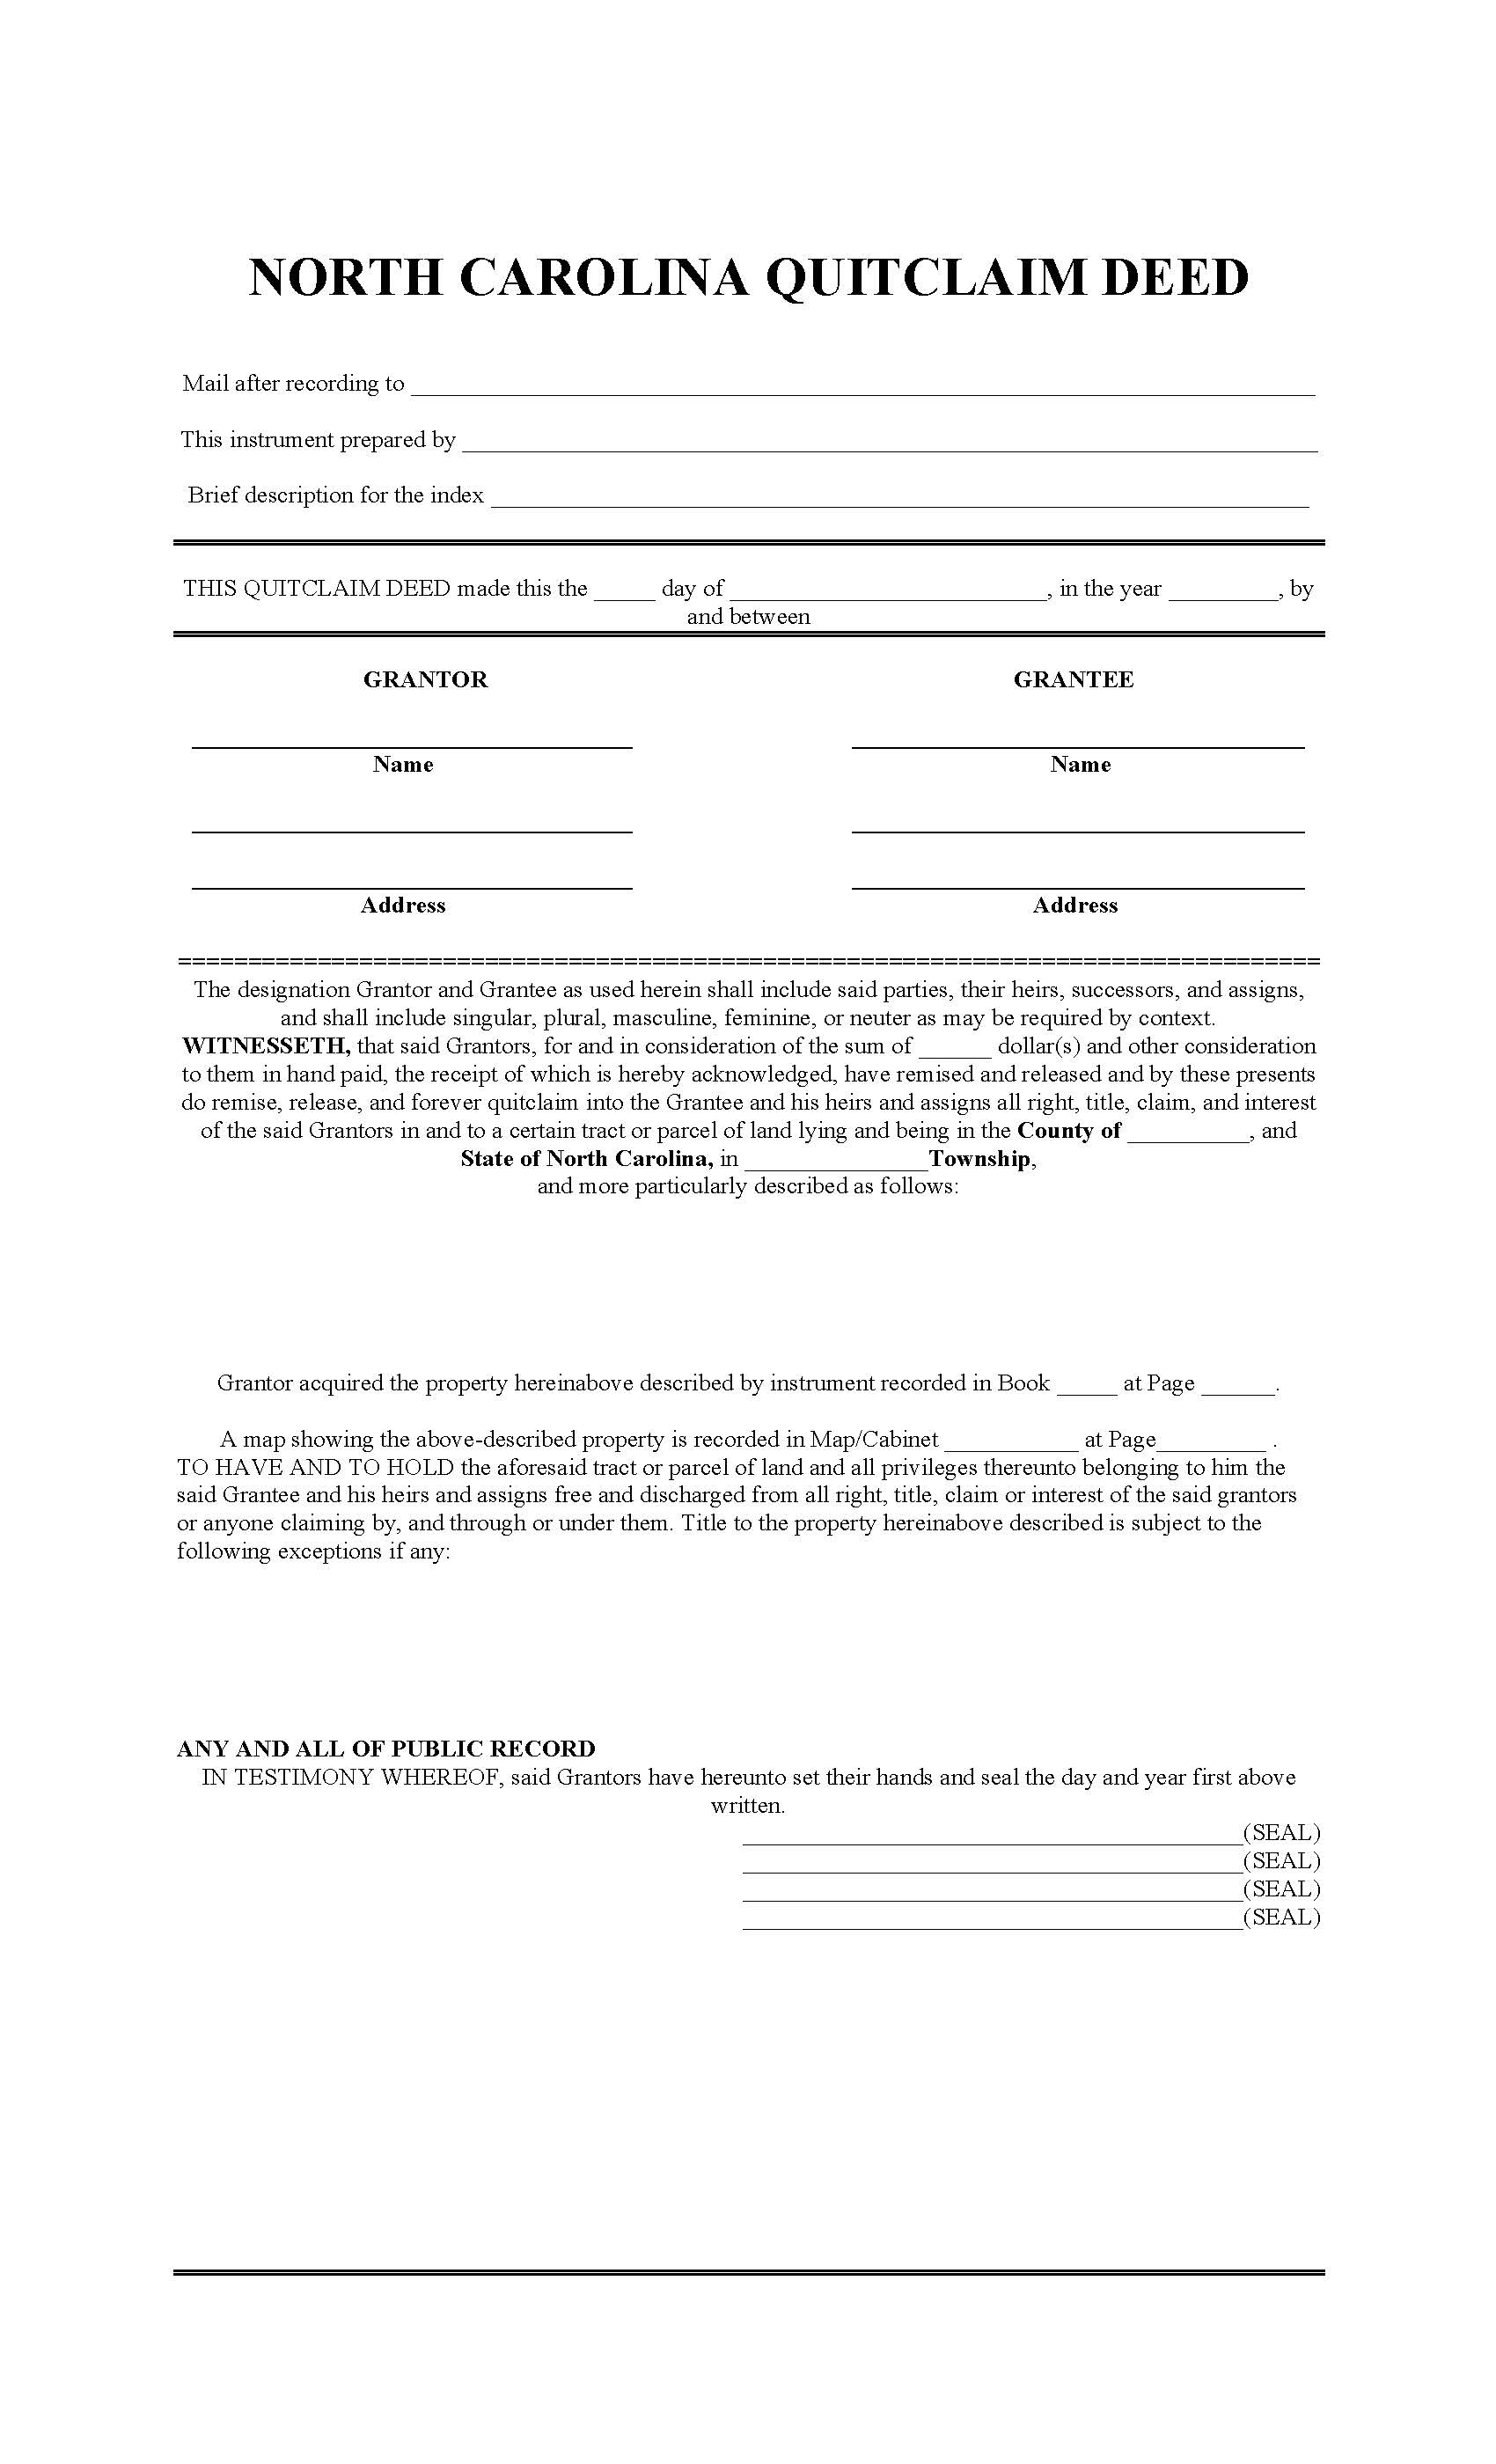 North Carolina Quit Claim Deed Form Deed Forms Deed Forms – Quick Claim Deed